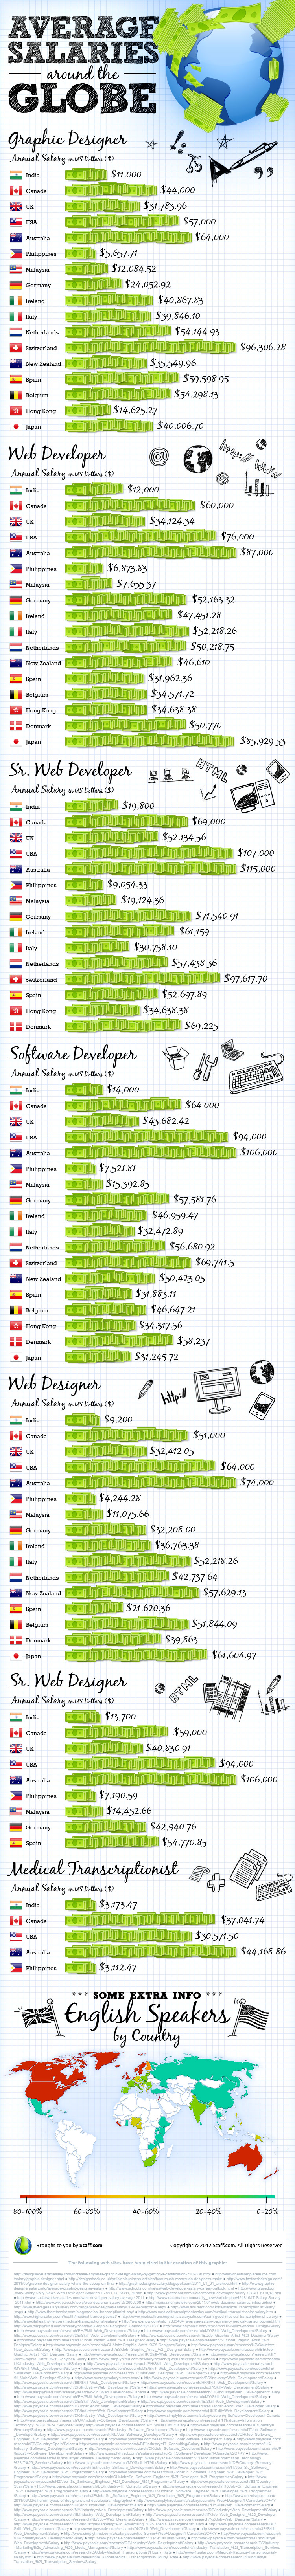 salaries1 Average salaries around the globe